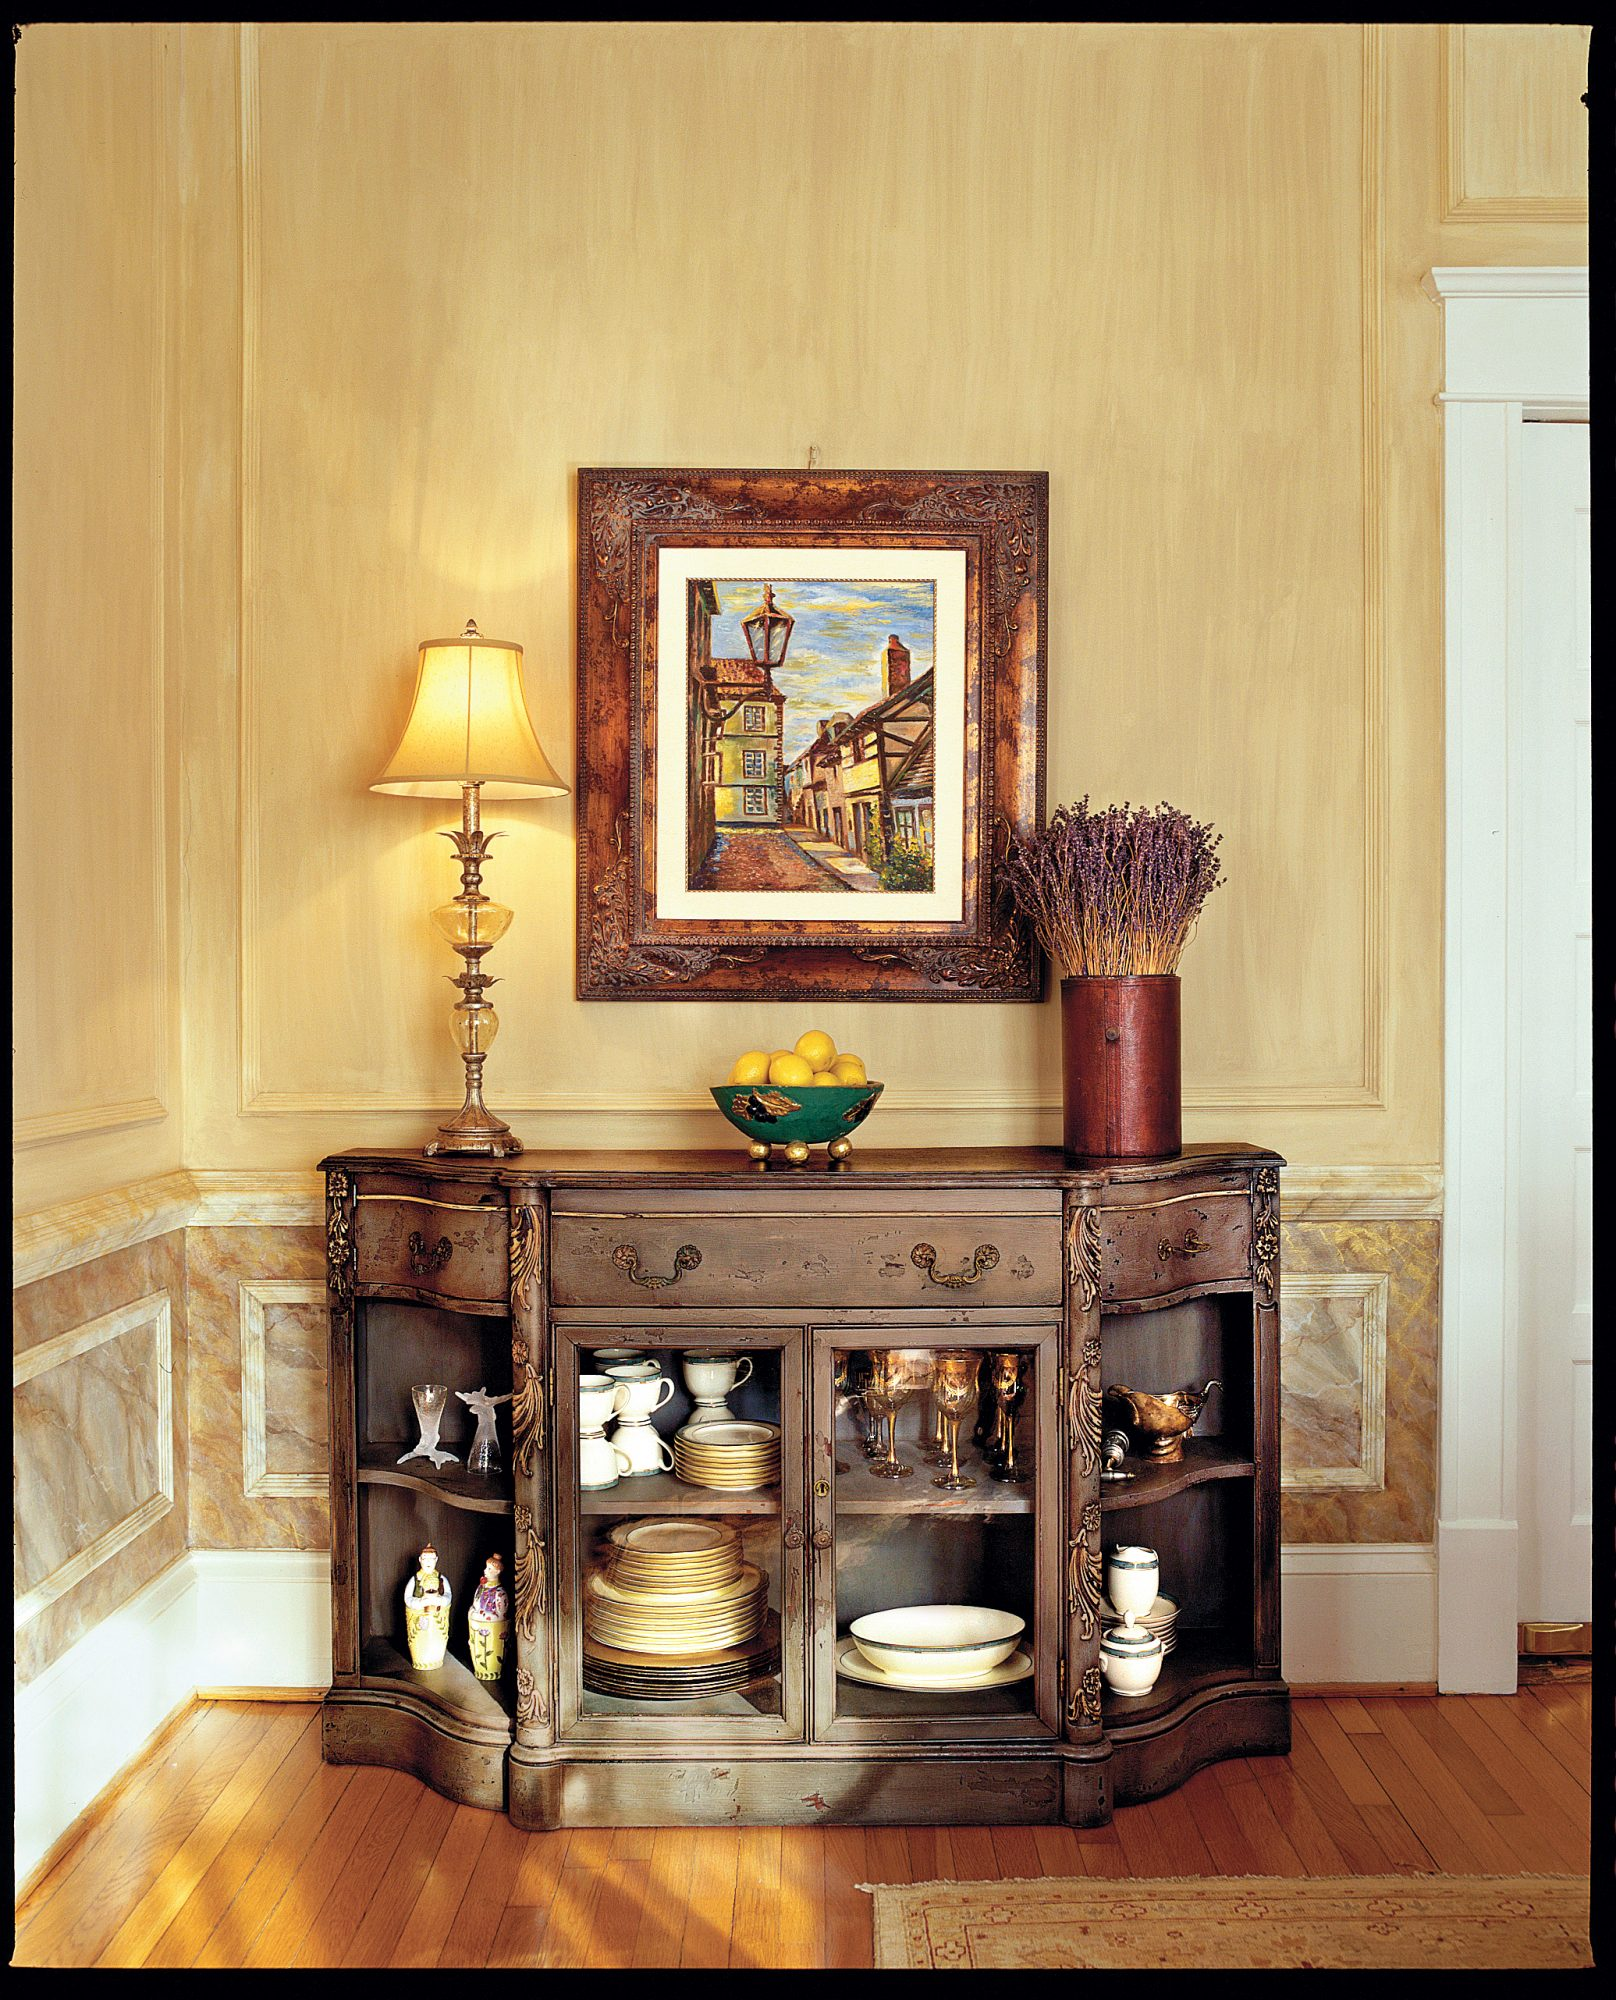 Fast Lessons in Faux Finishing a Room